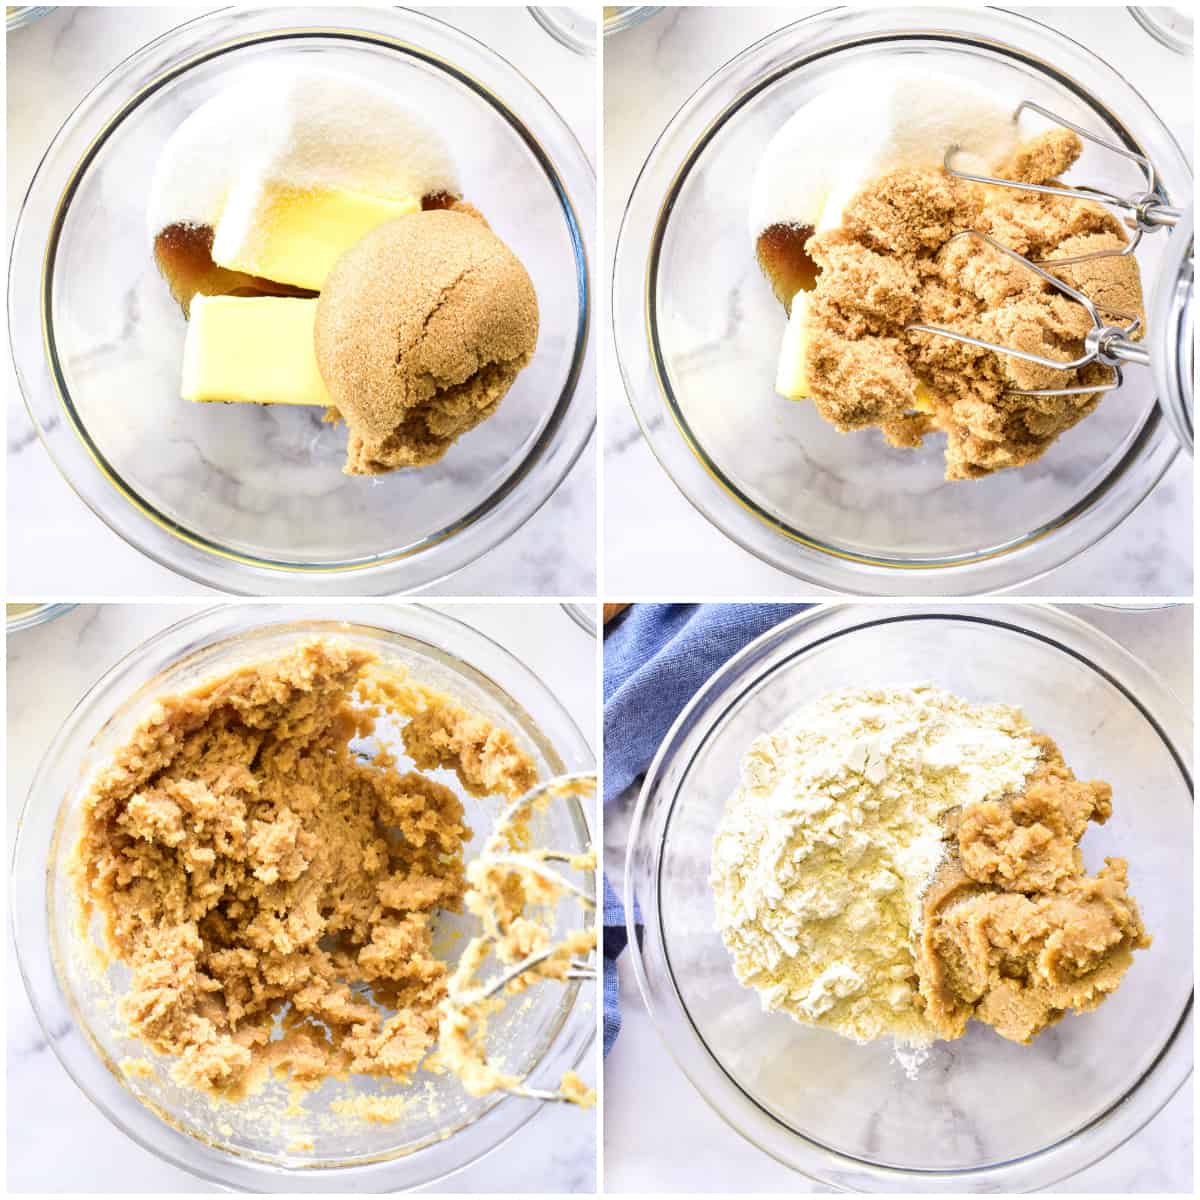 Cookie Dough process shots